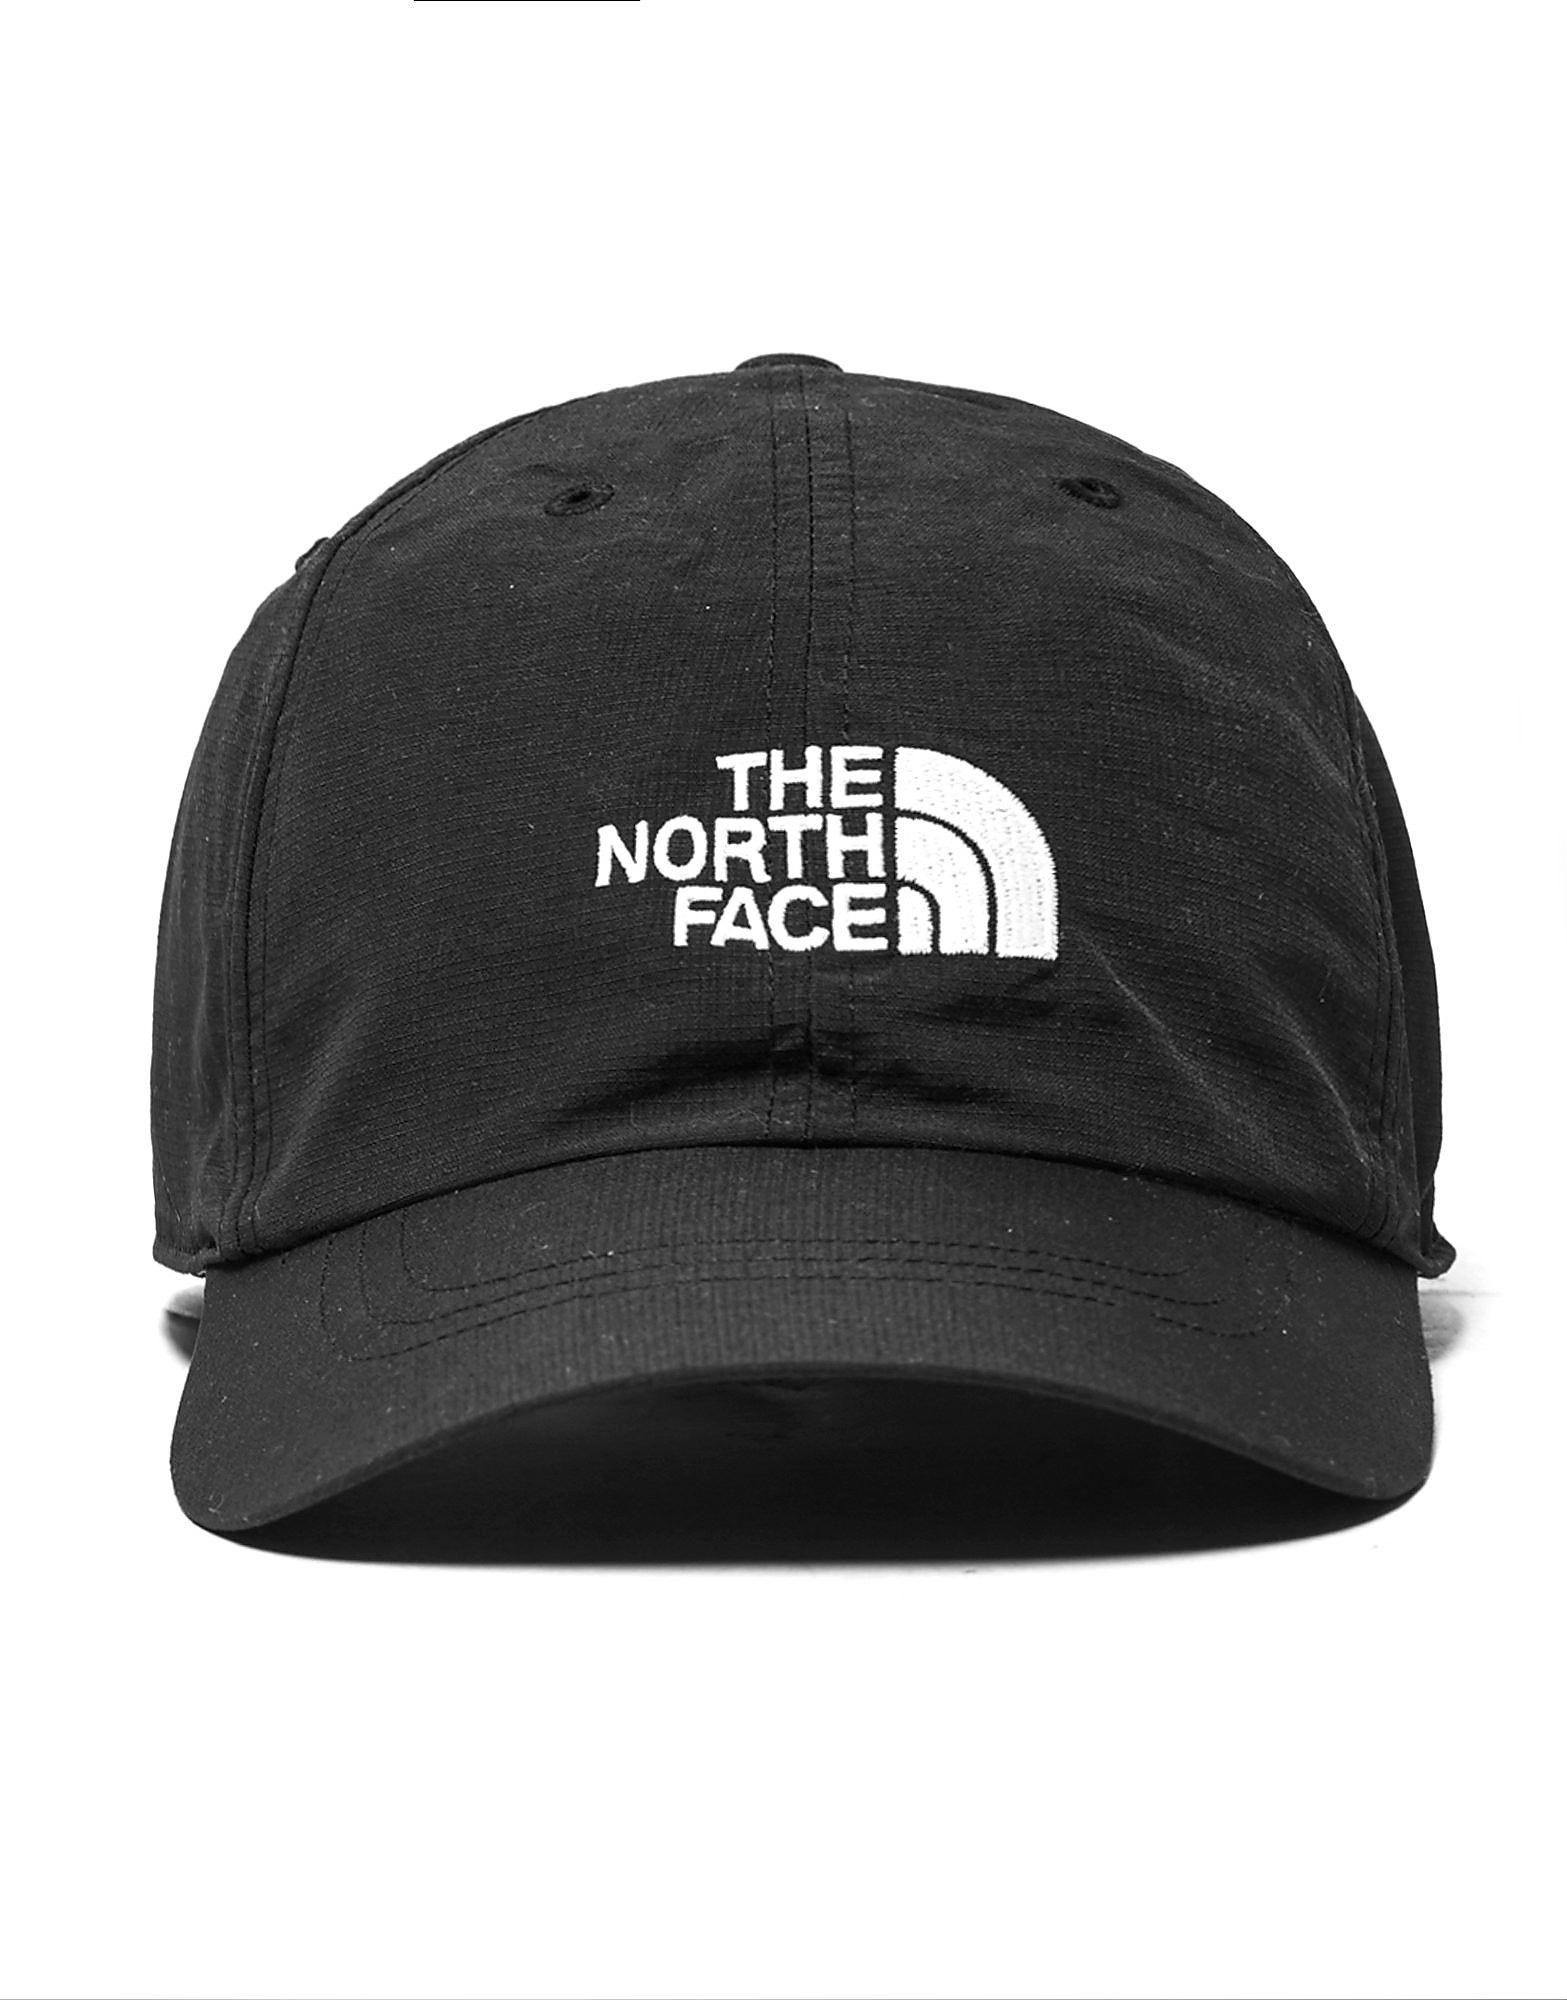 The North Face Horizon Ball Strapback Pet